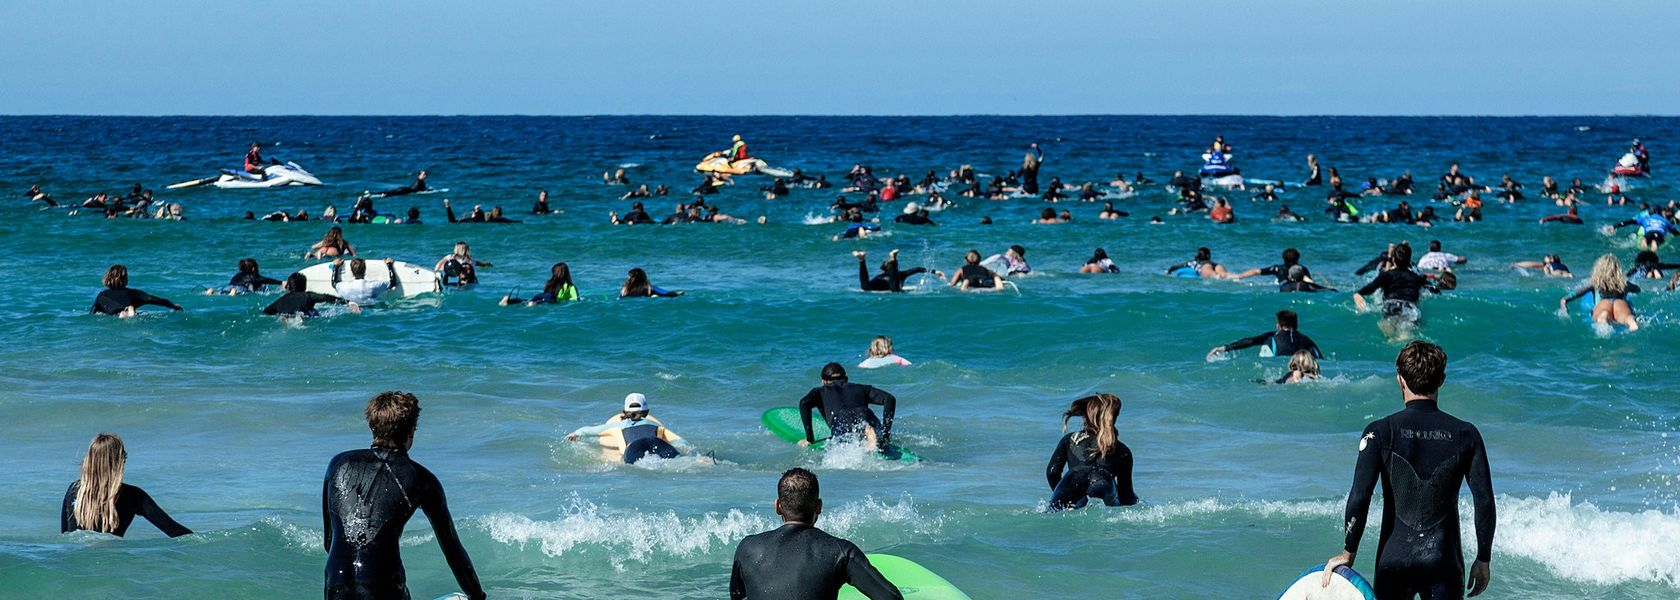 Surfers in oil, gas protest